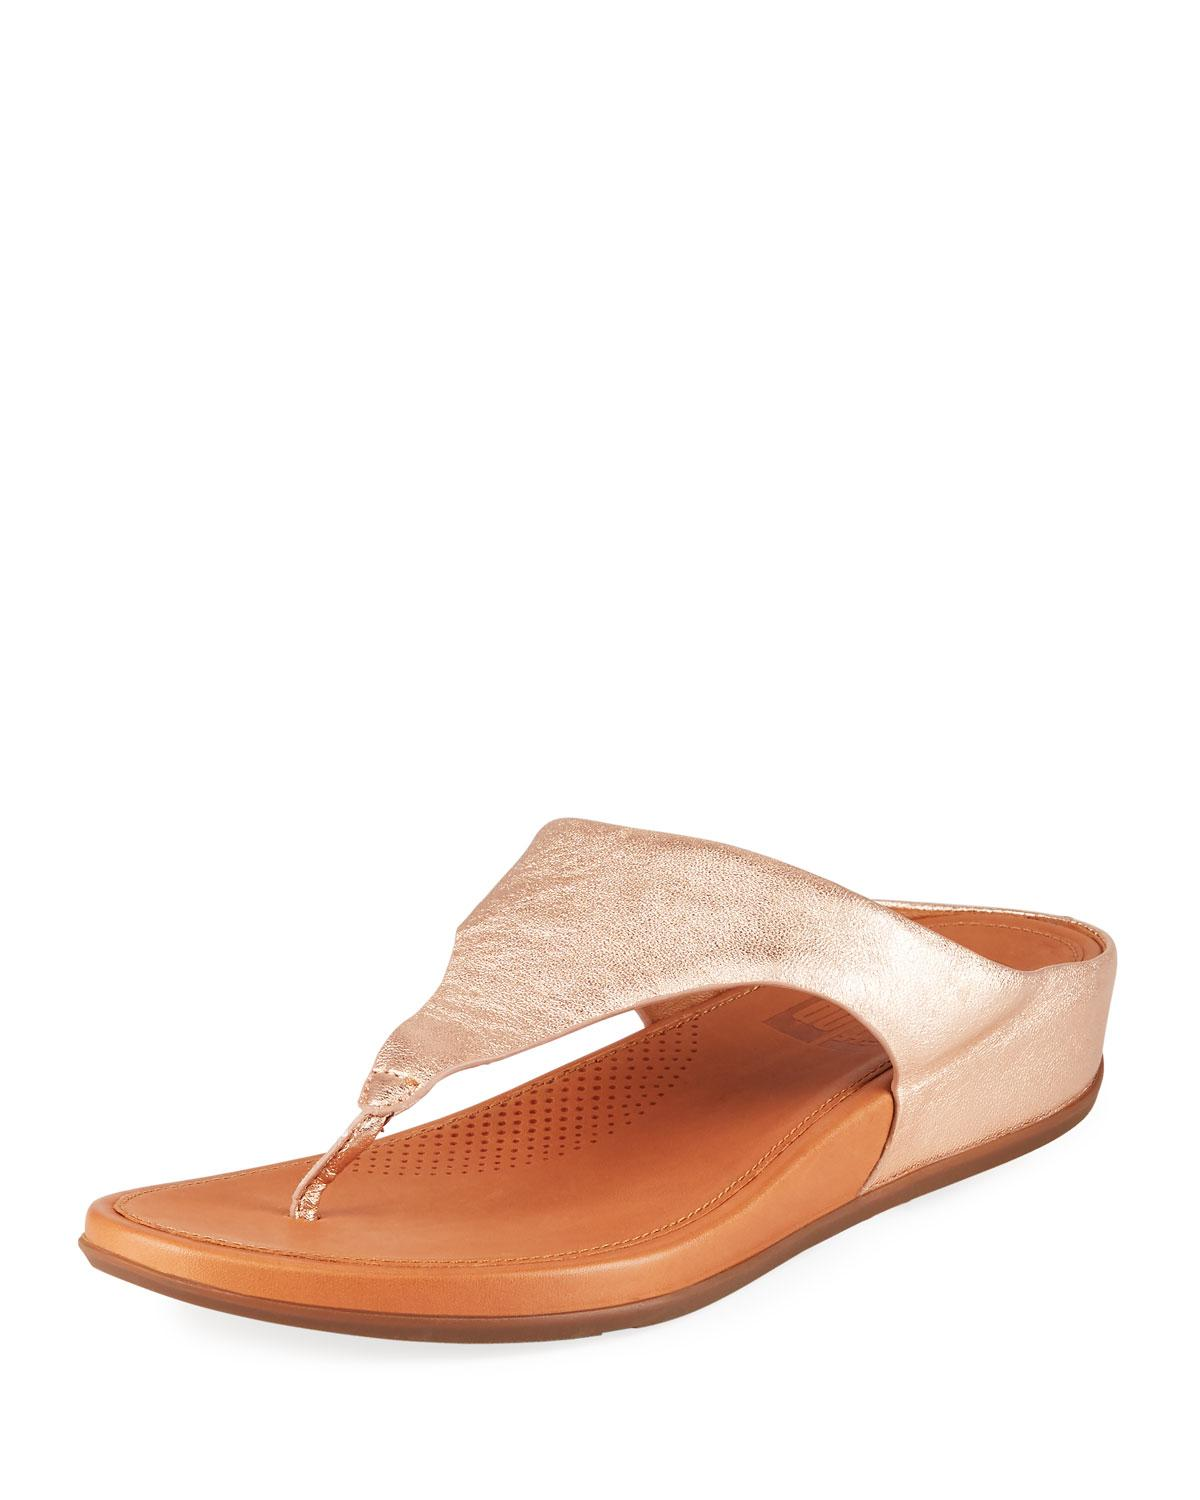 e67c635626095 Fitflop. Women s Banda Metallic Leather Thong Sandals